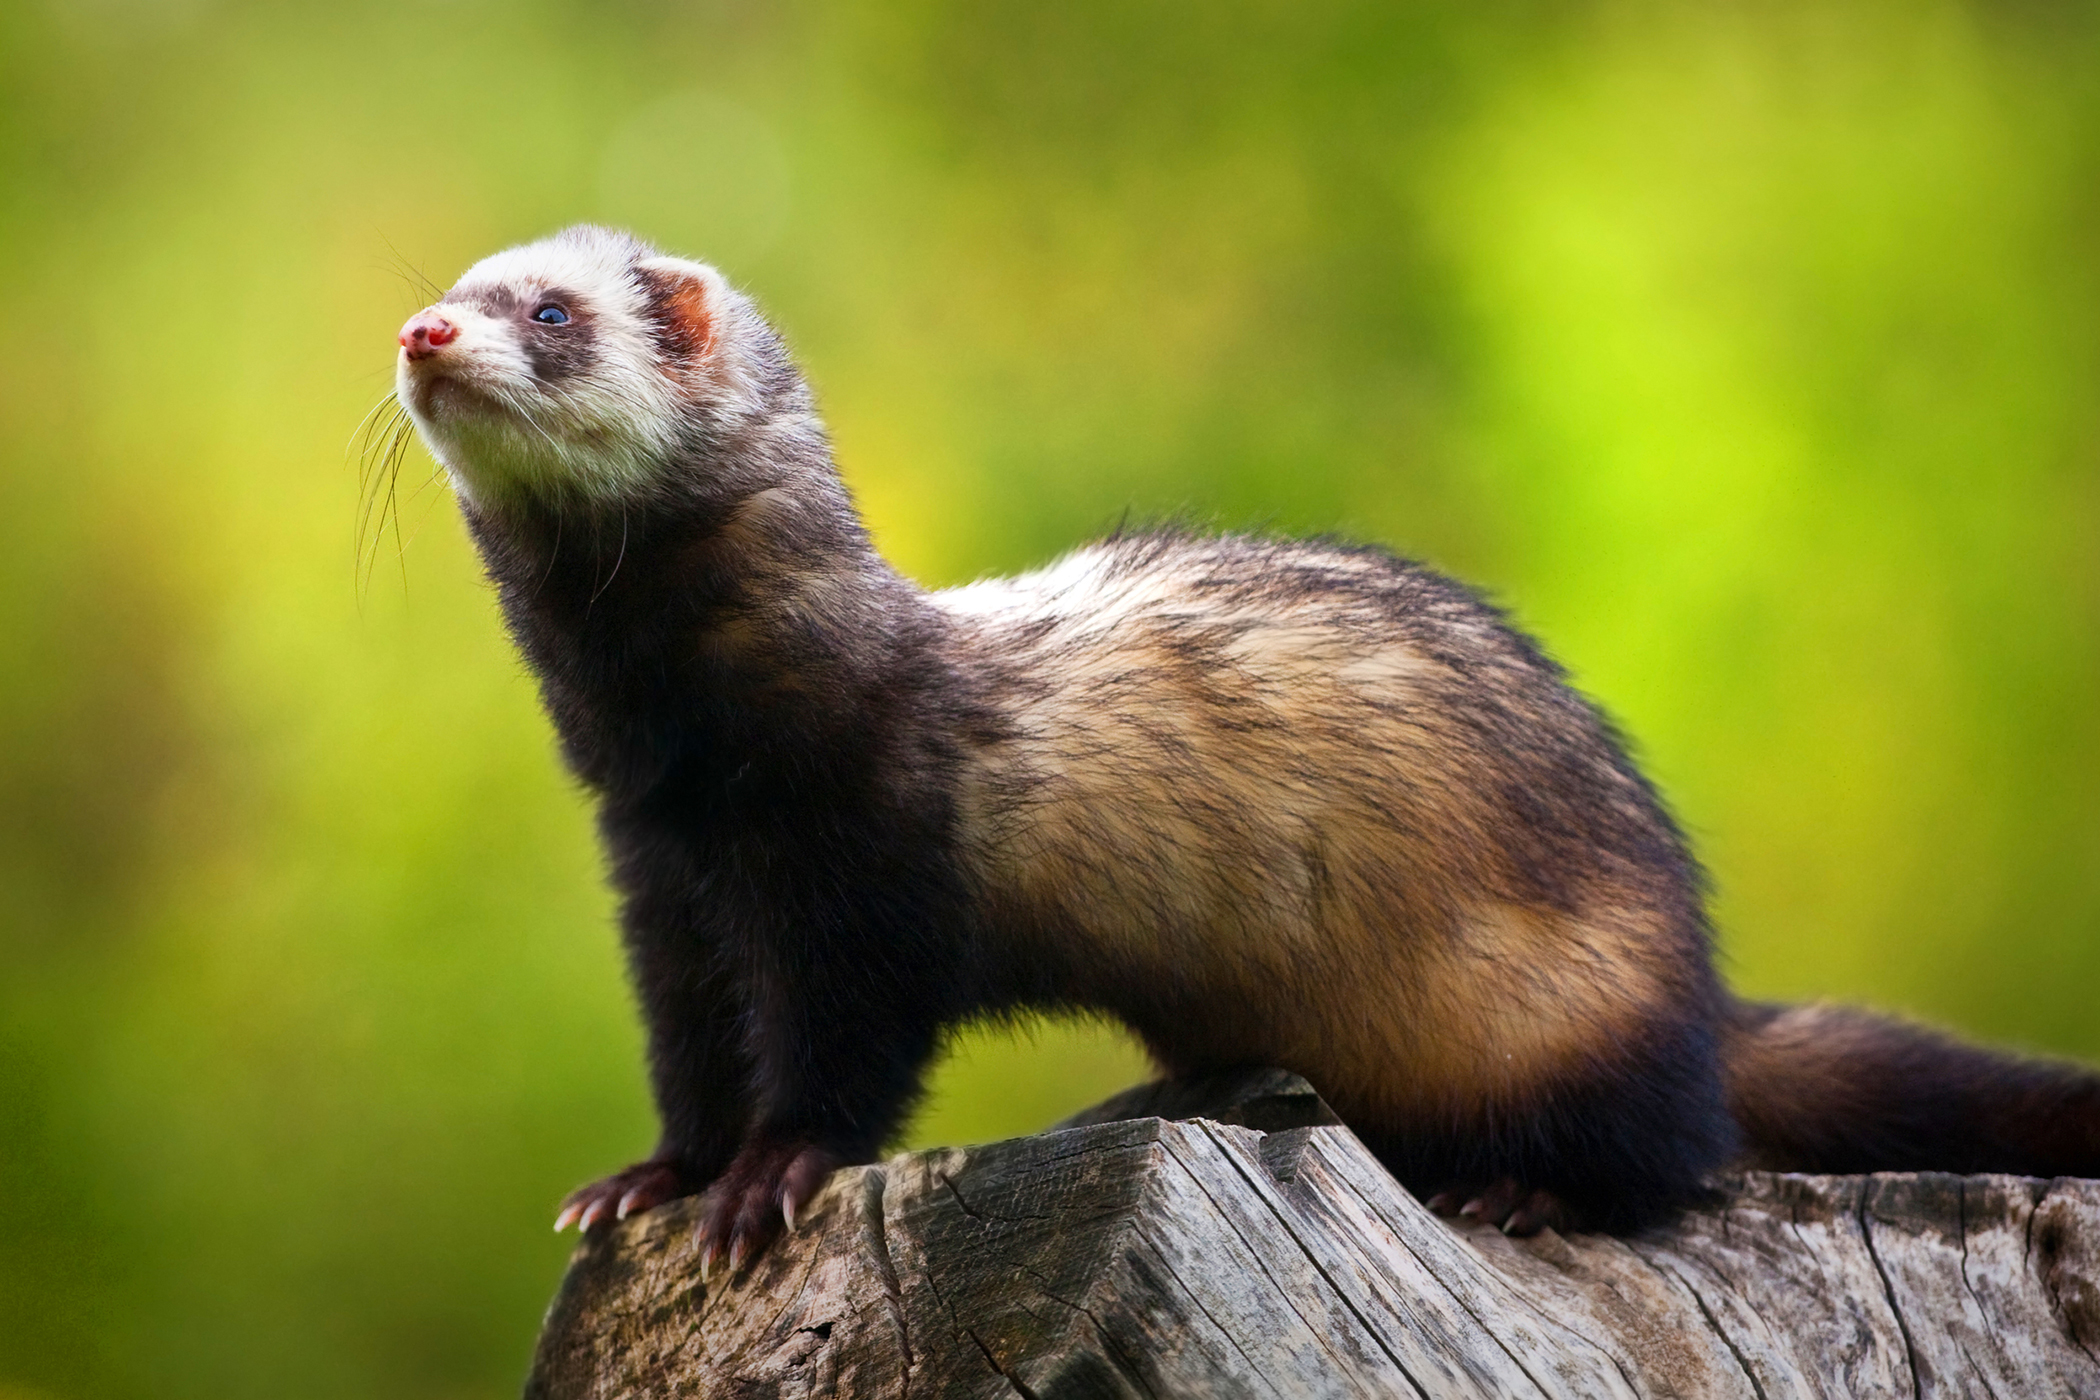 Increased Thirst And Urination in Ferrets